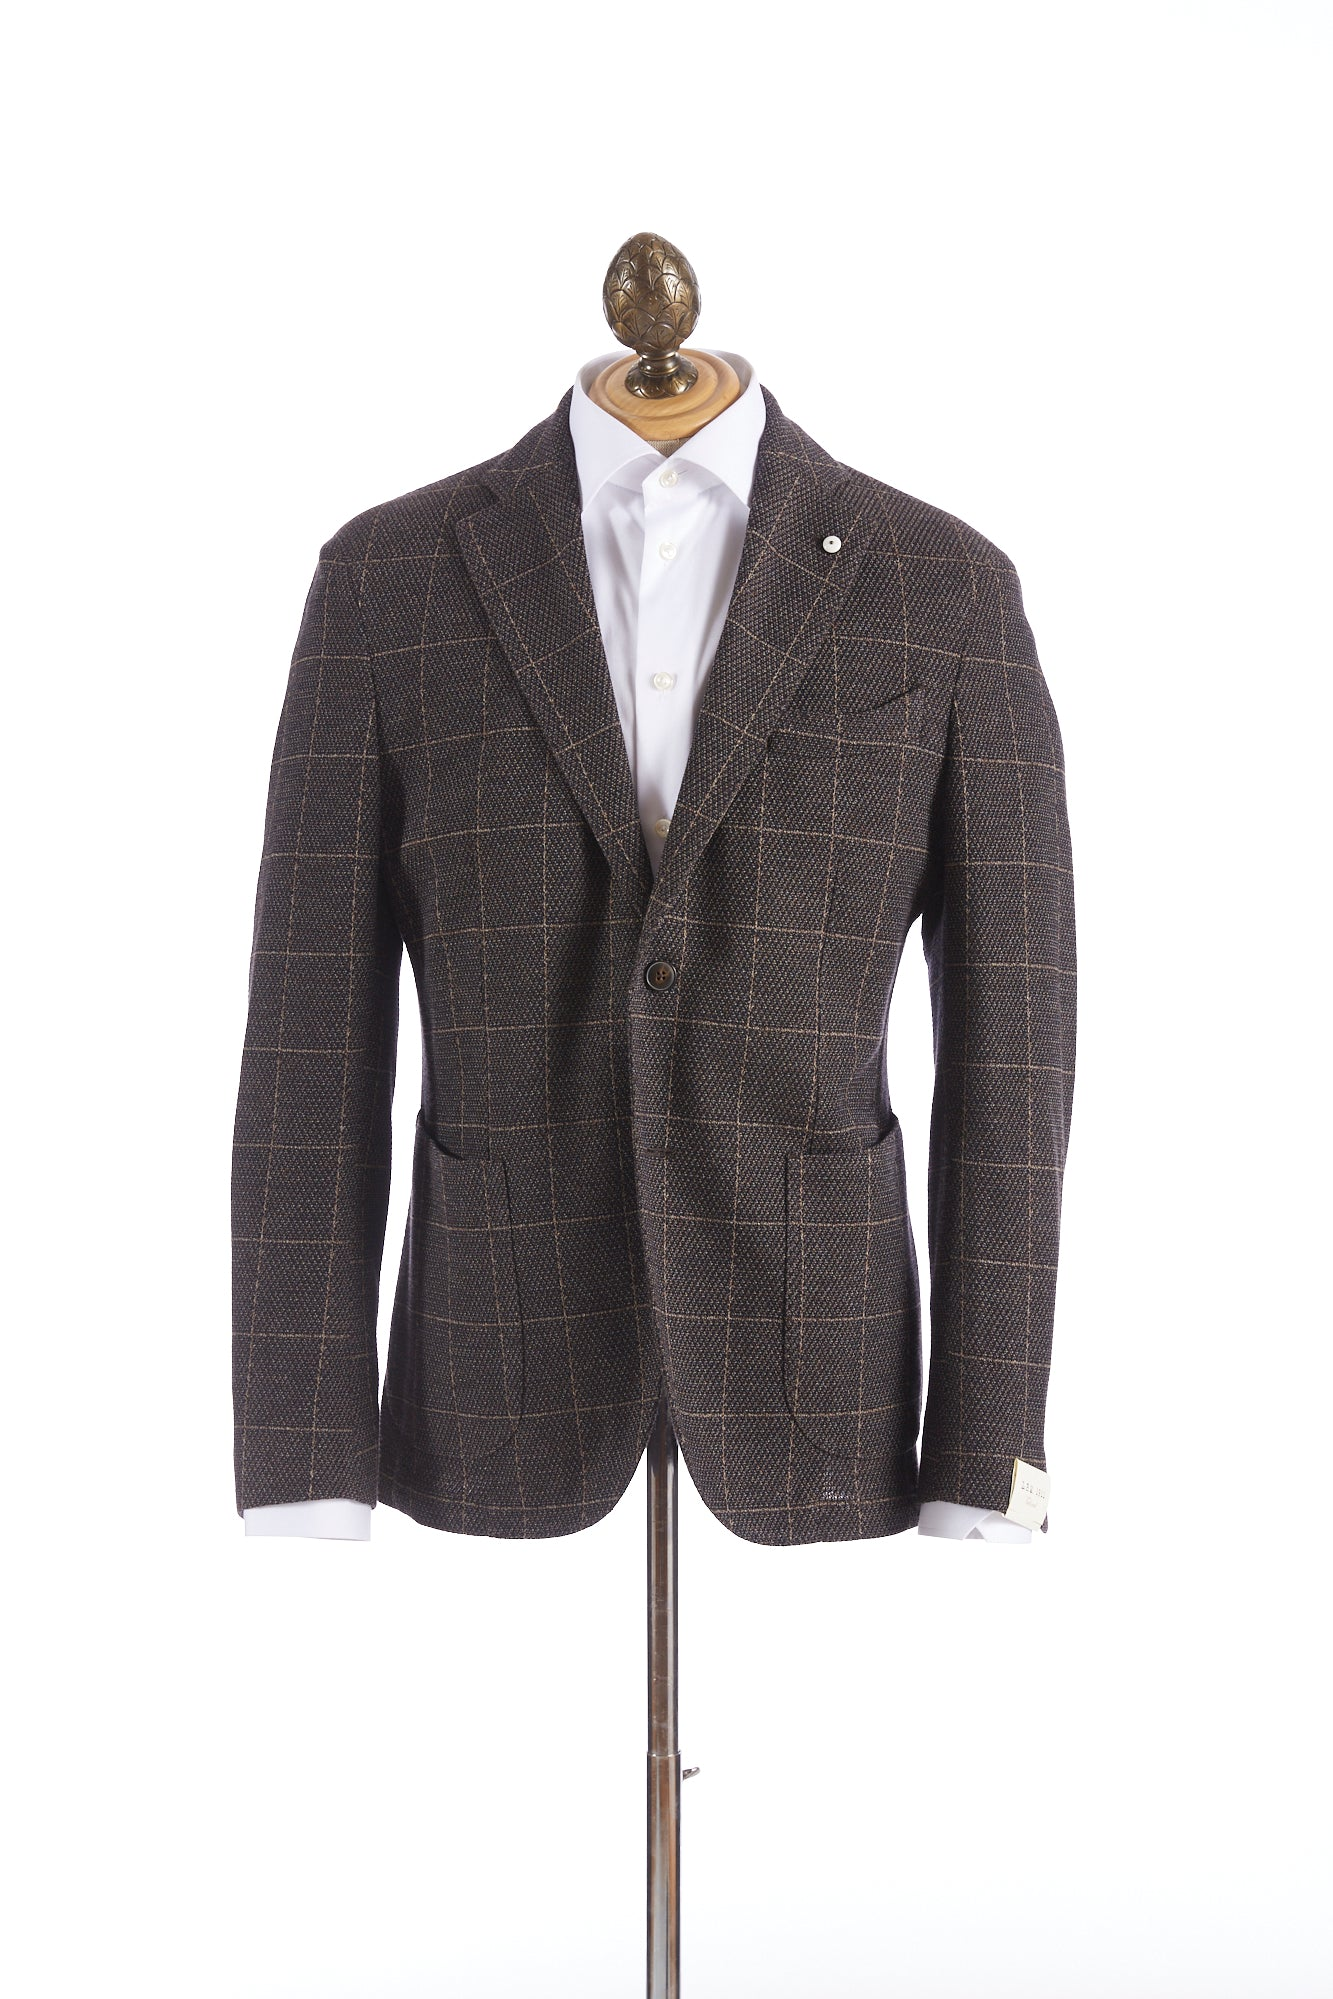 L.B.M. 1911 Brown Windowpane Sport Jacket - Sport Jackets - L.B.M. 1911 - LALONDE's